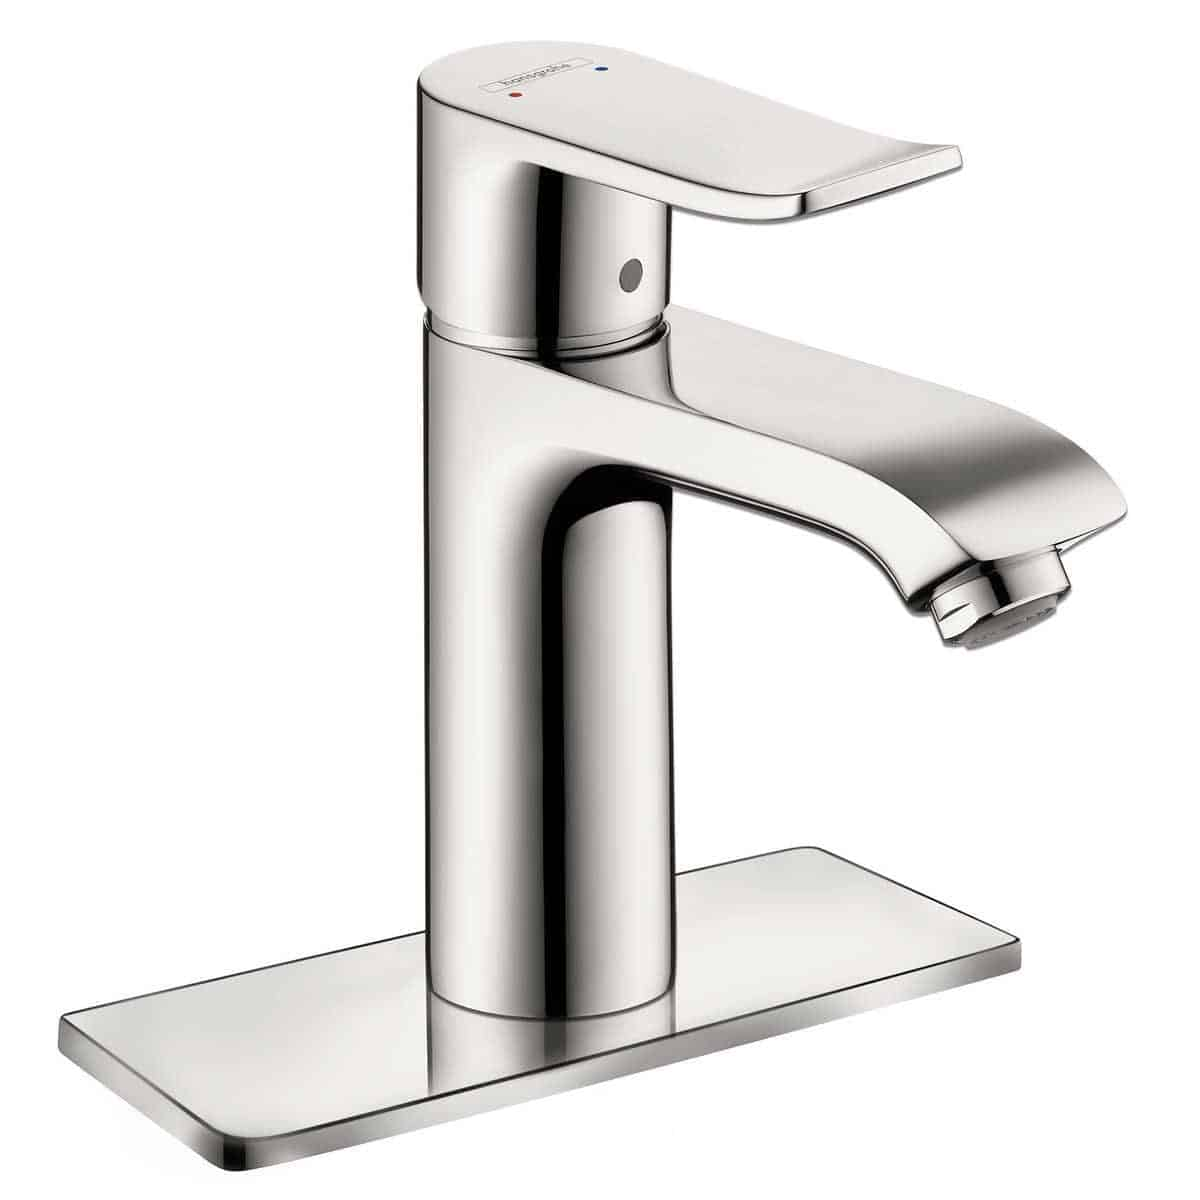 hansgrohe kitchen faucet banquette metris bathroom thervgeeks